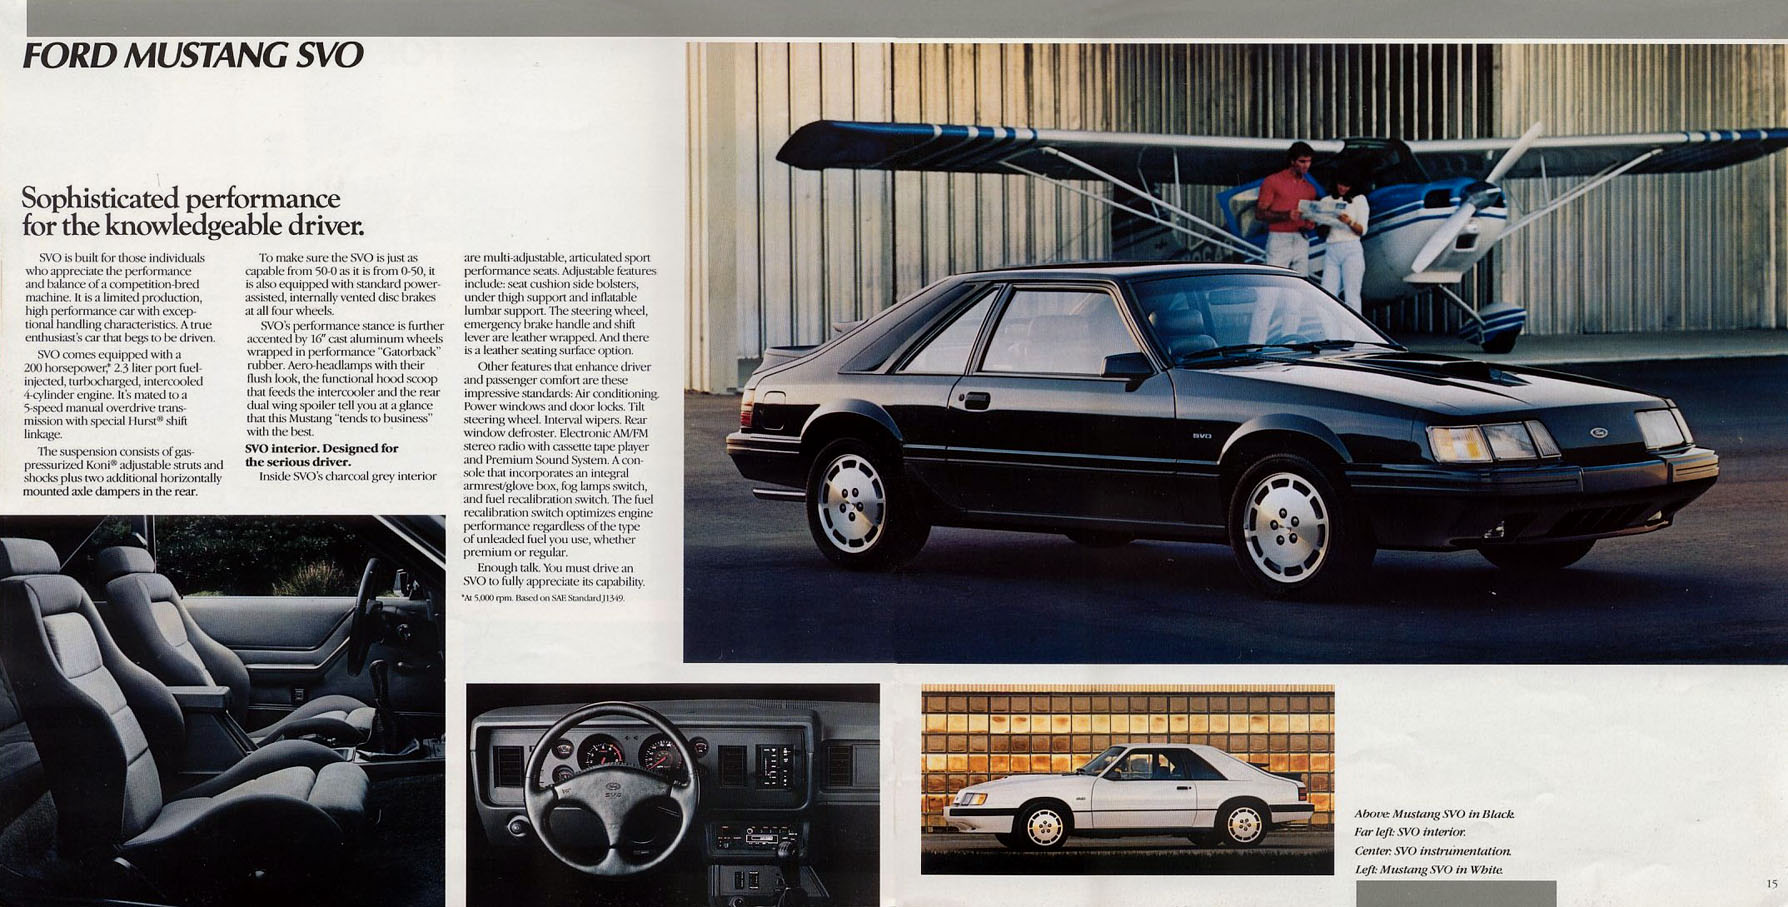 Mustang Eighties Cars 1983 Ford Gt Engine Svo Page From The 1984 Brochure Linked Old Car Manual Projects Amazing Brochures Section